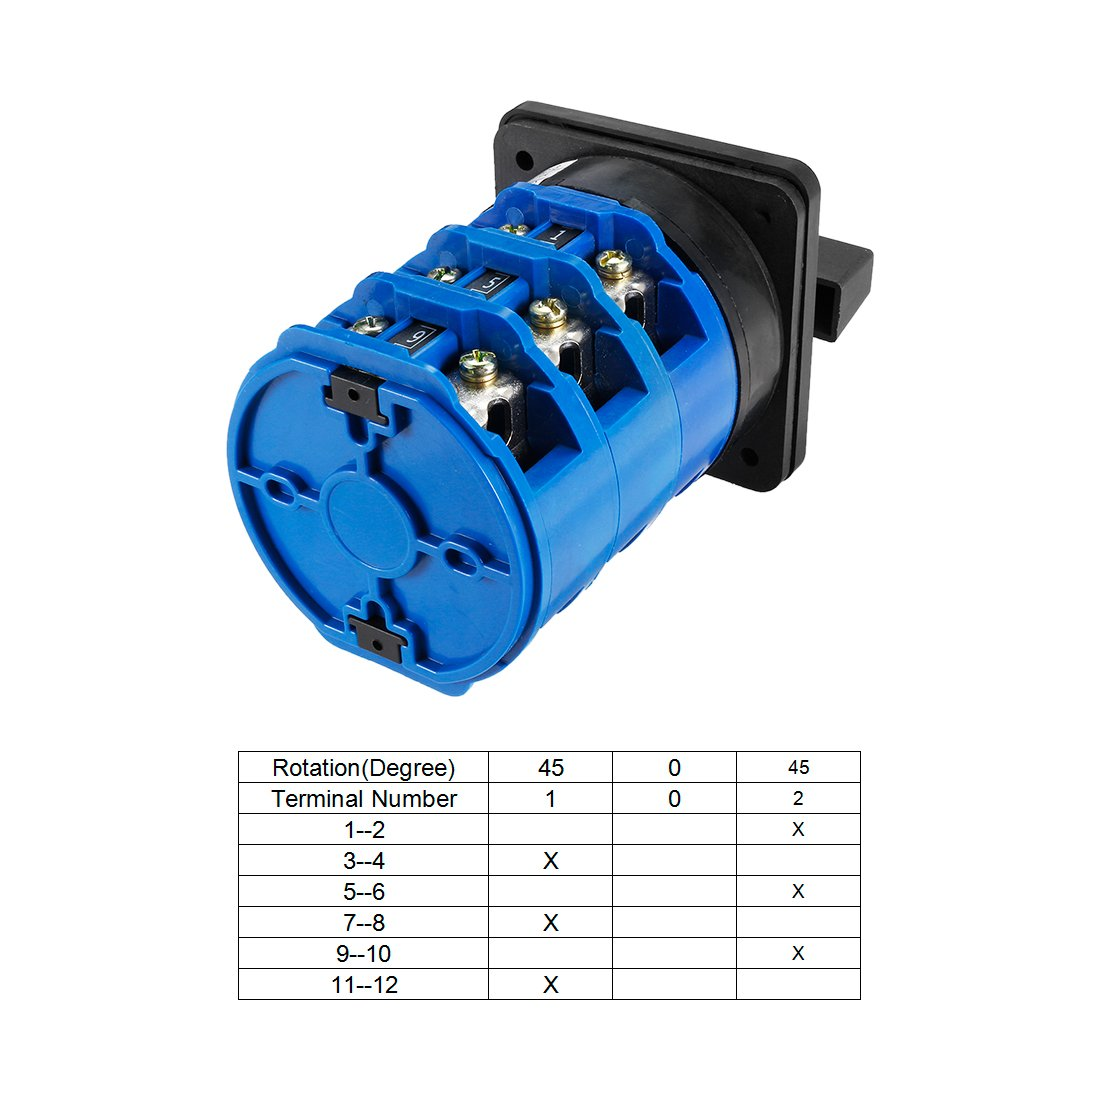 uxcell Changeover Switch 3 Position Rotary Selector Cam Switch Panel Mount 12 Terminals Latching Ui 550V Ith 20An Red a18042500ux0205